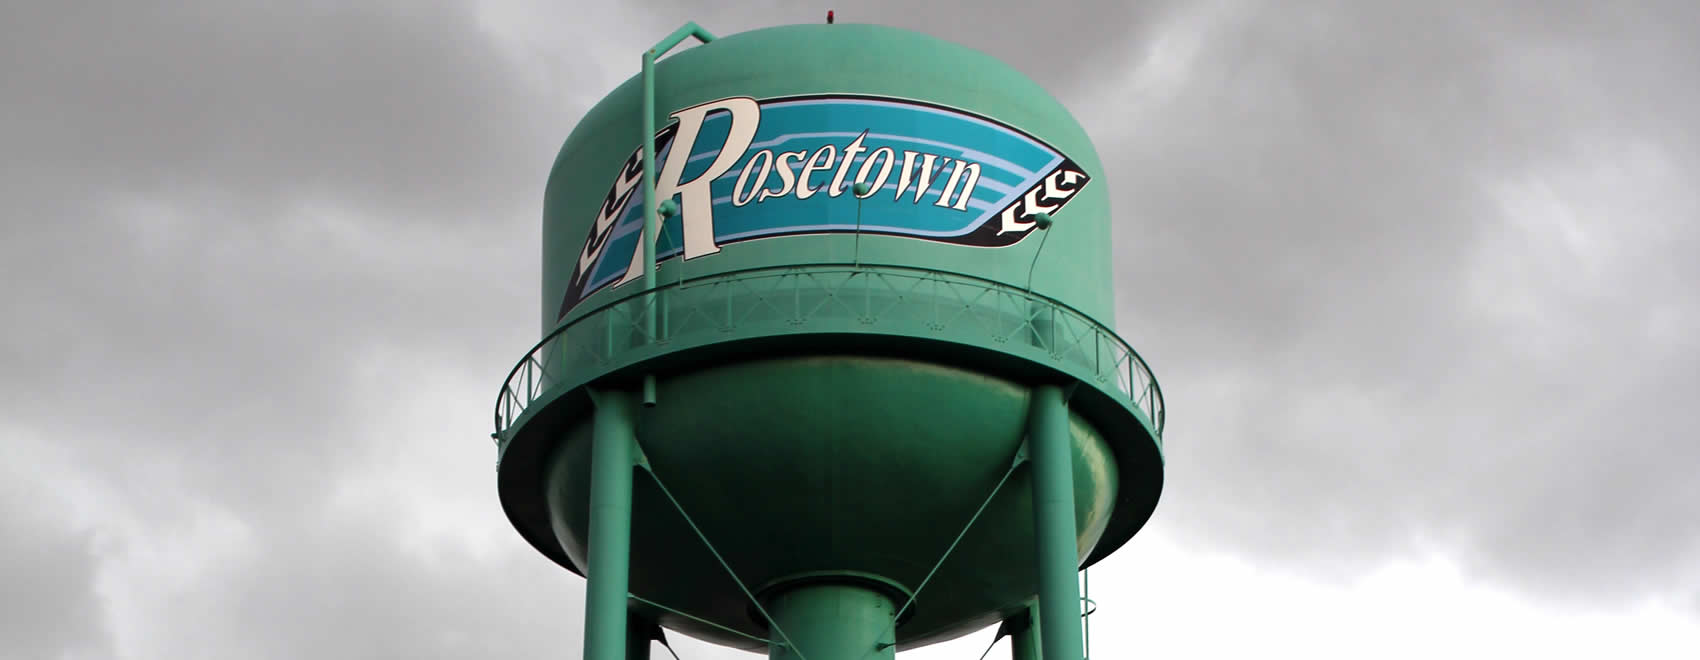 Town of Rosetown Water Tower